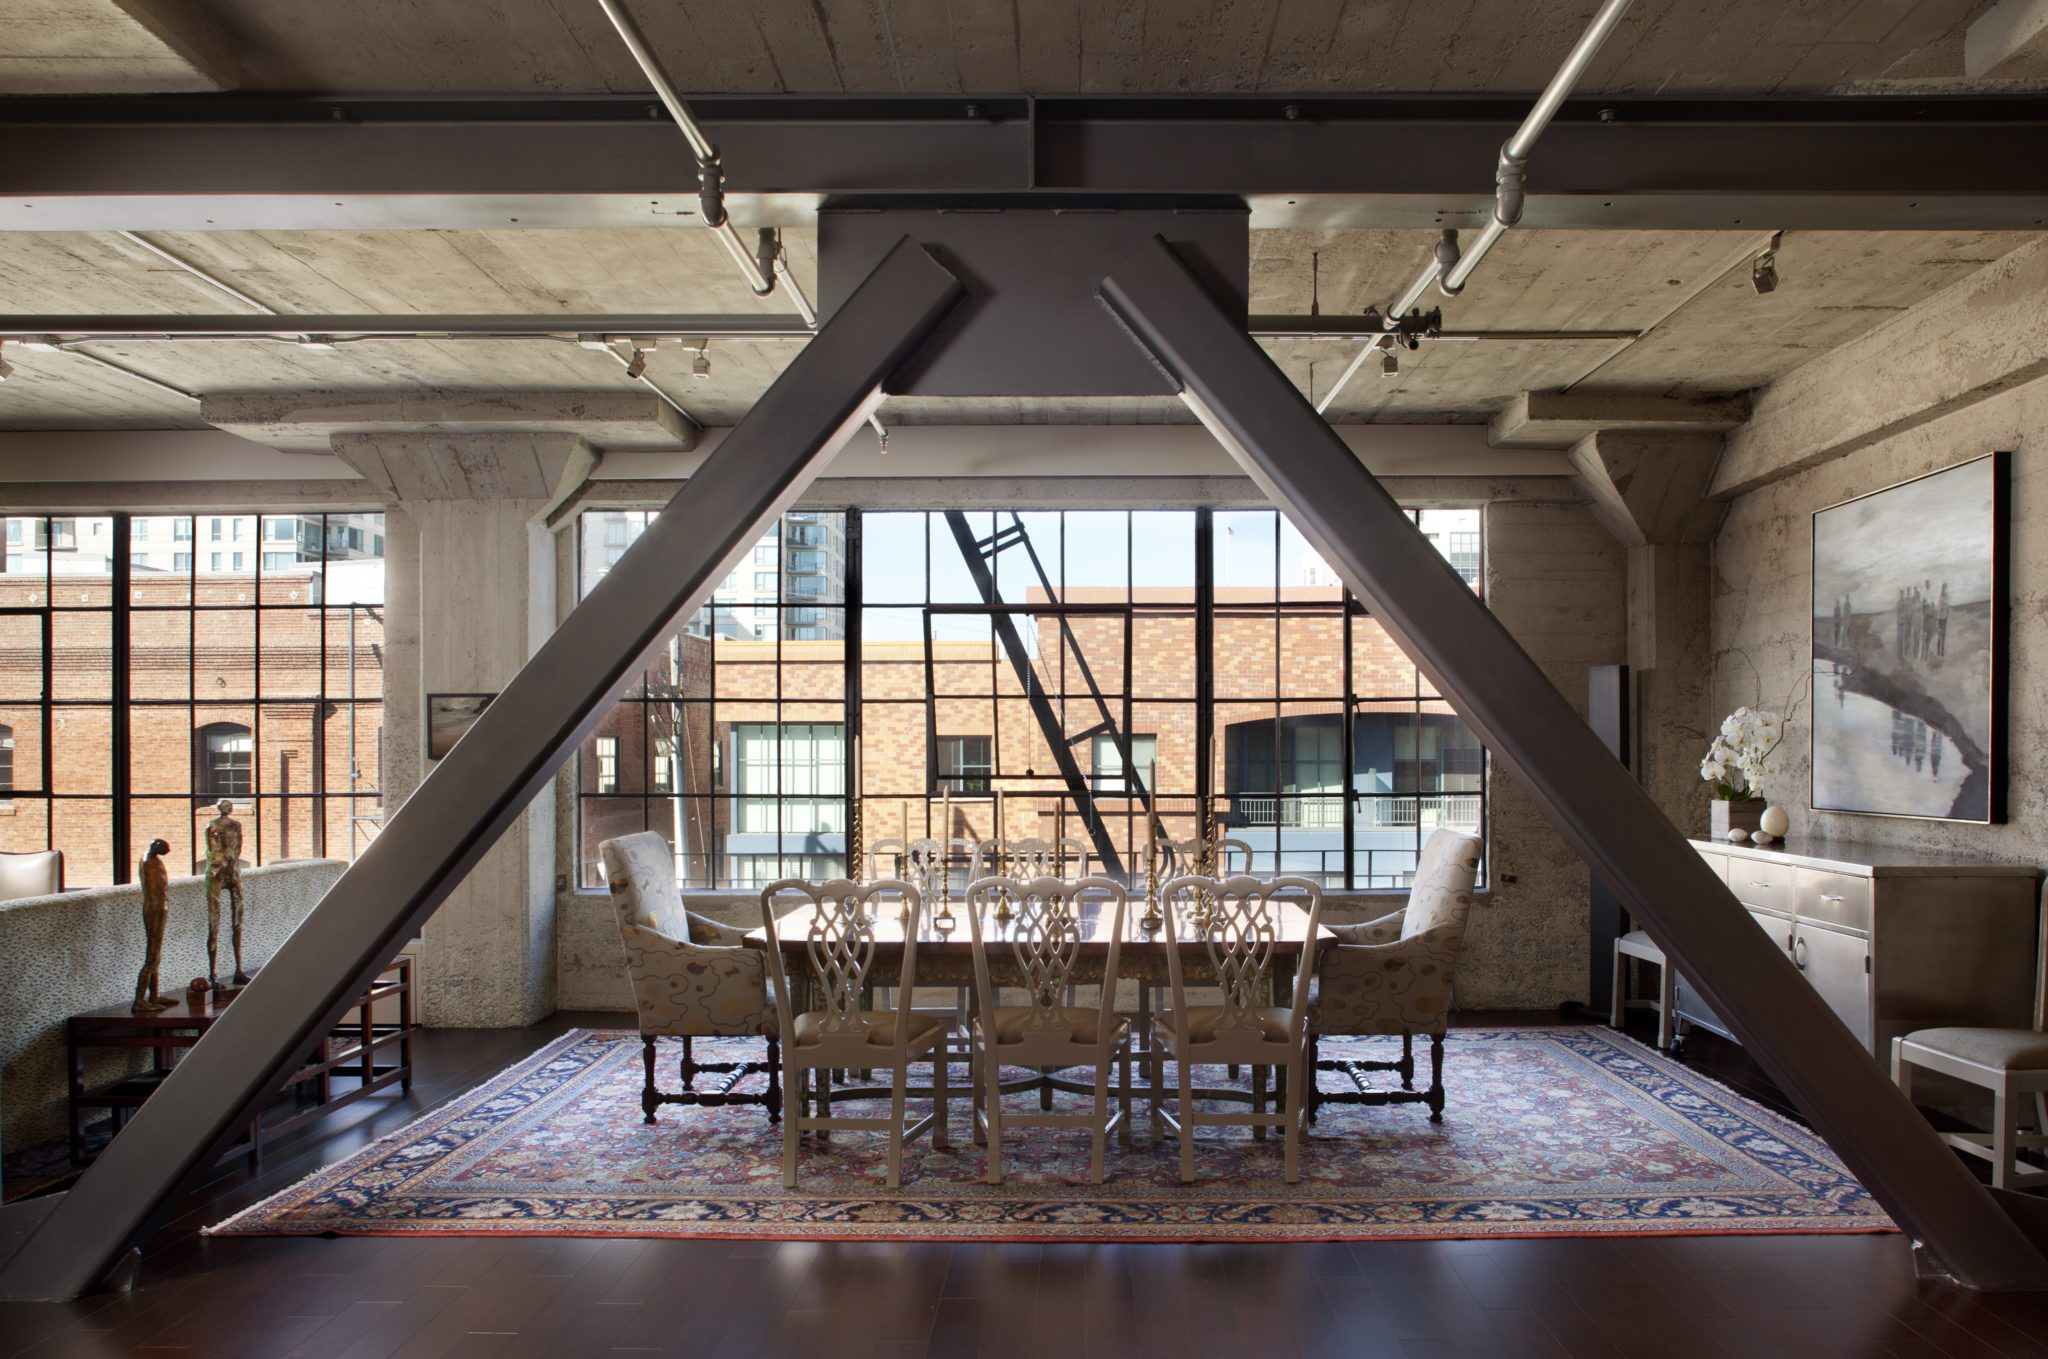 A 3,000-square-foot loft in San Francisco. Modern interiors were inserted within the existing industrial space. By Cass Calder Smith | CCS Architecture